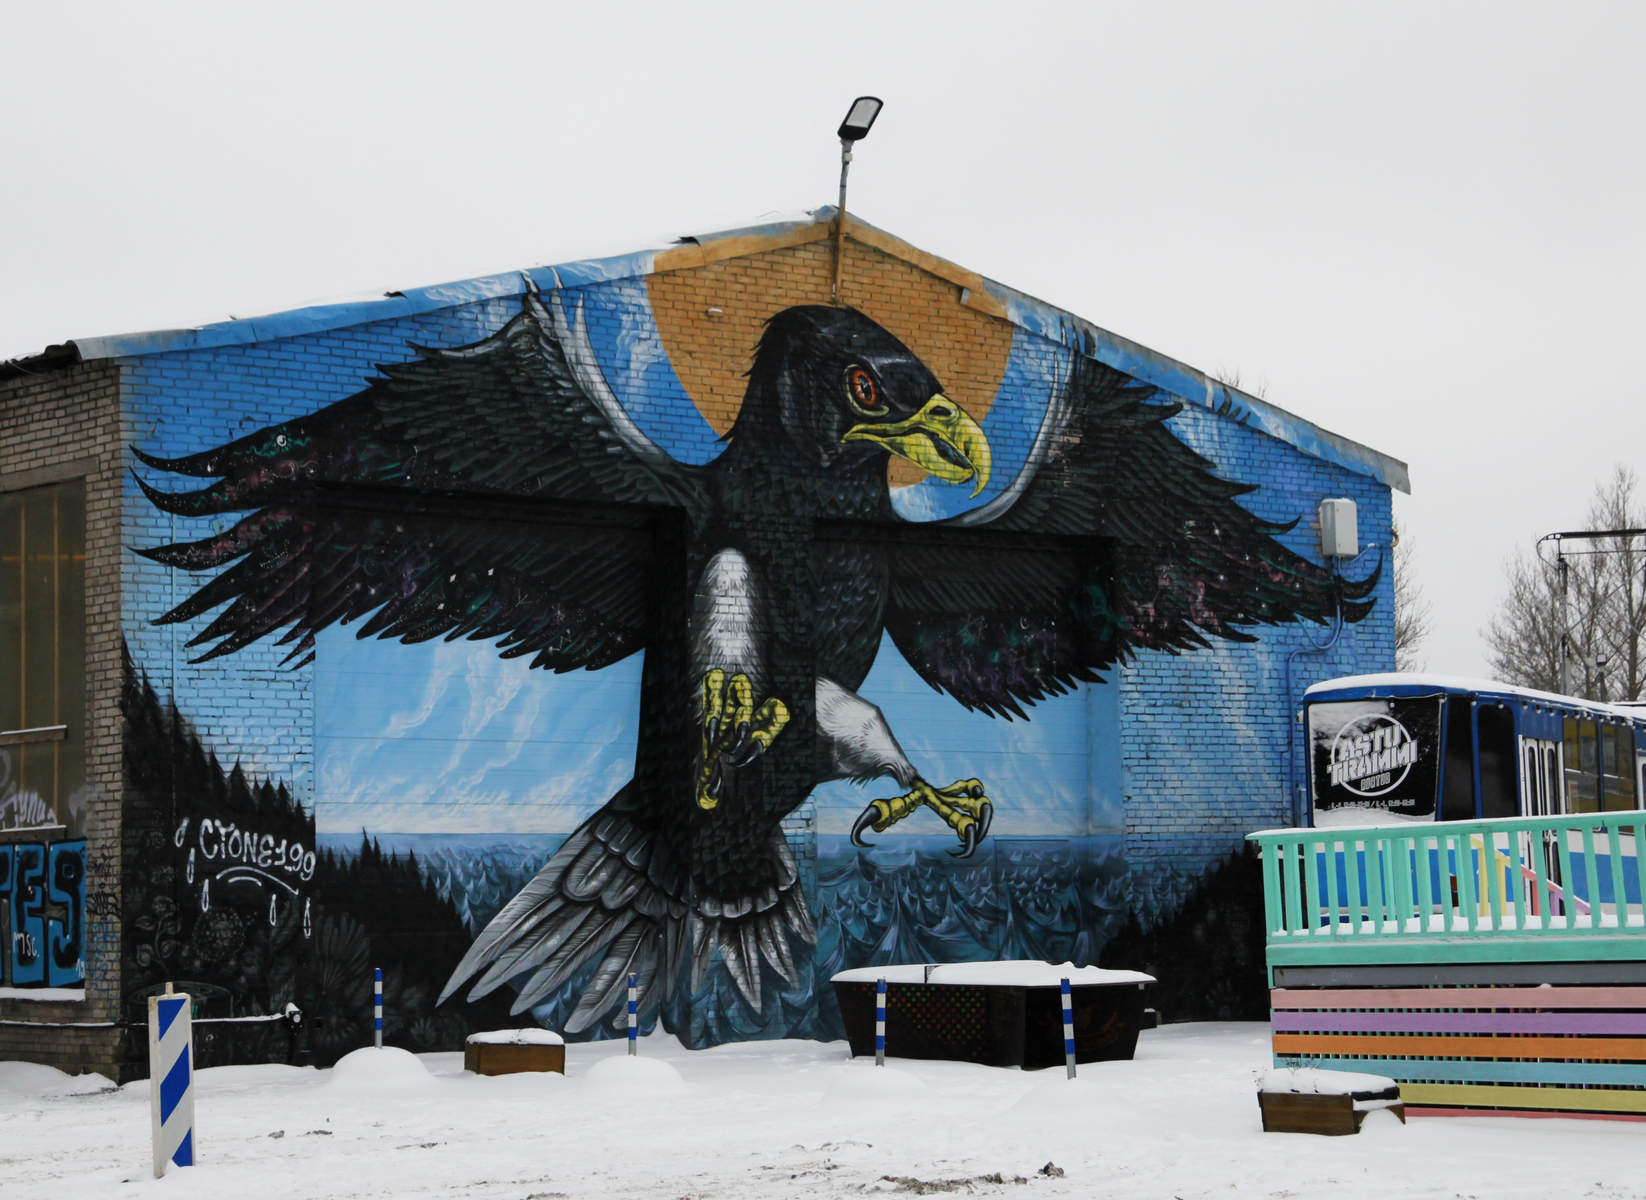 A giant eagle - street art by Cinzah in Tallinn, Estonia Photo: Mairit Krabbi